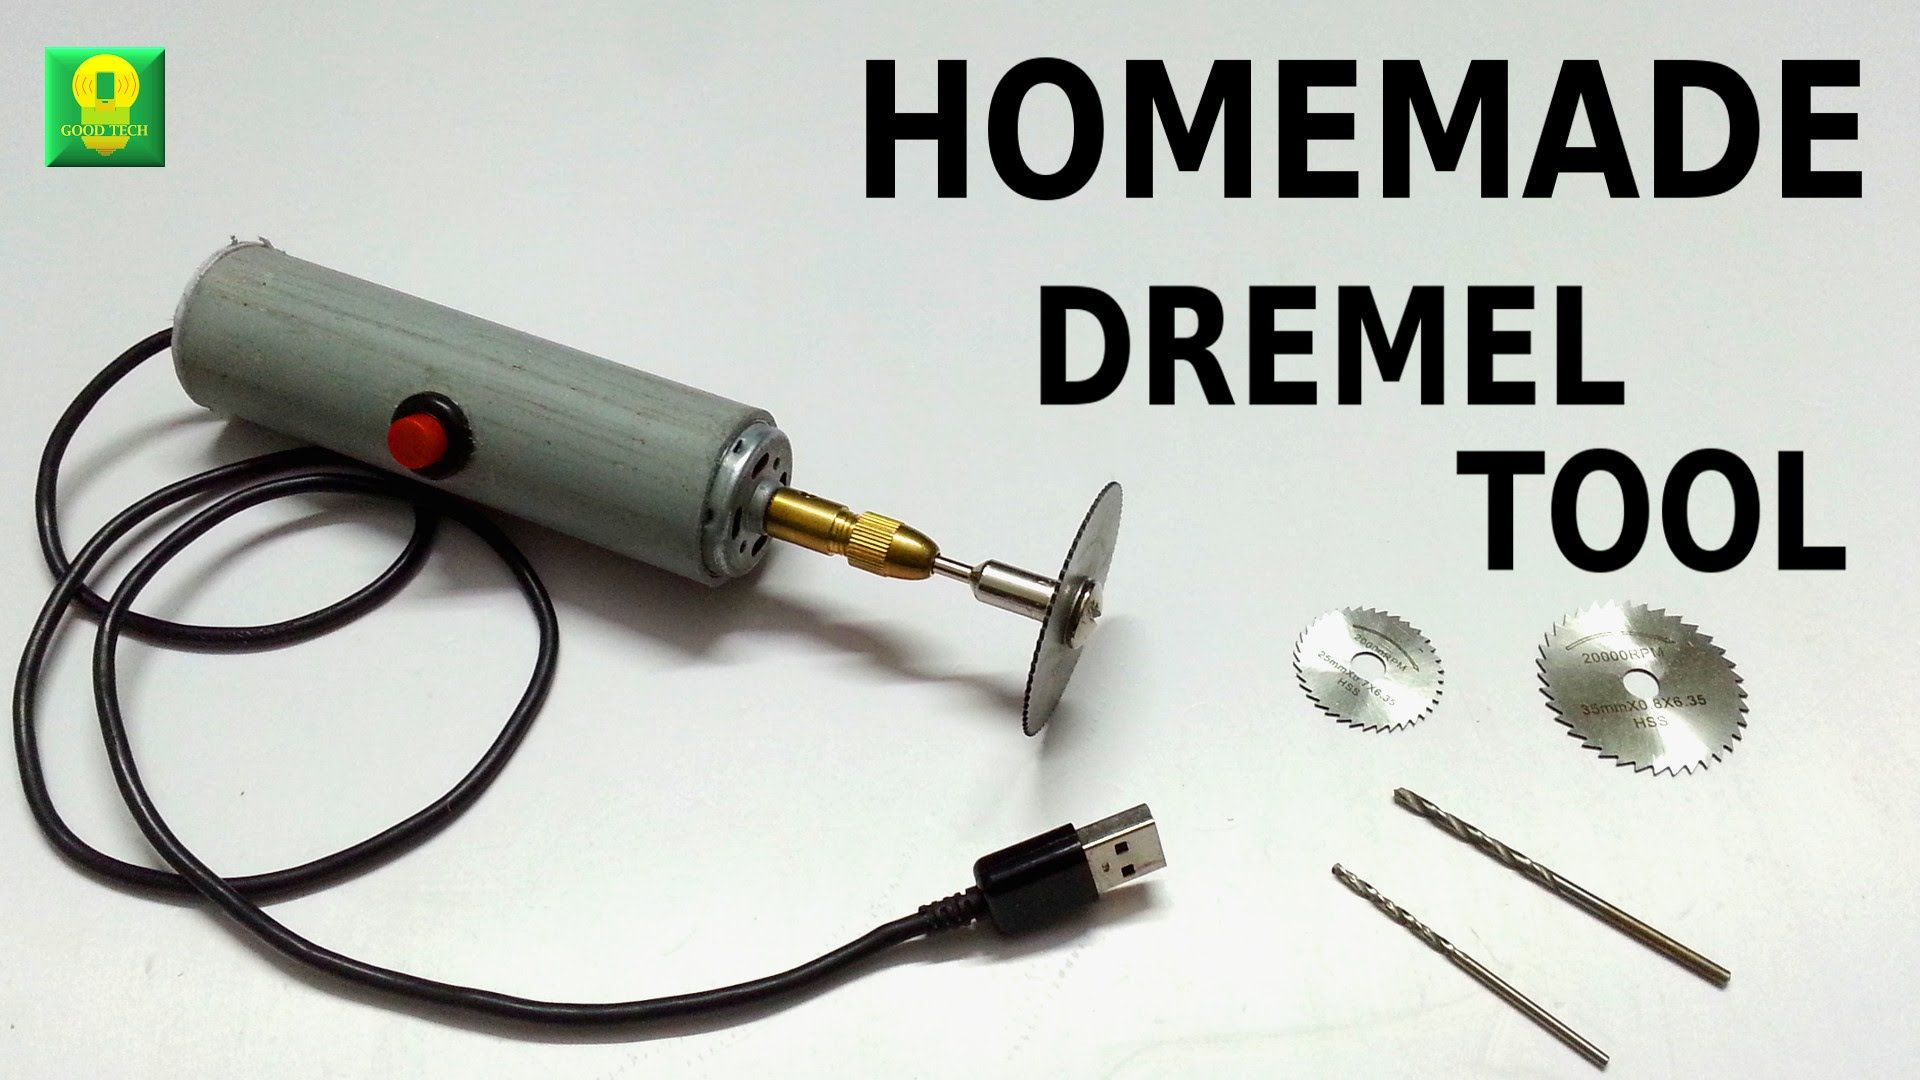 How To Make Powerful Dremel Tool At Home